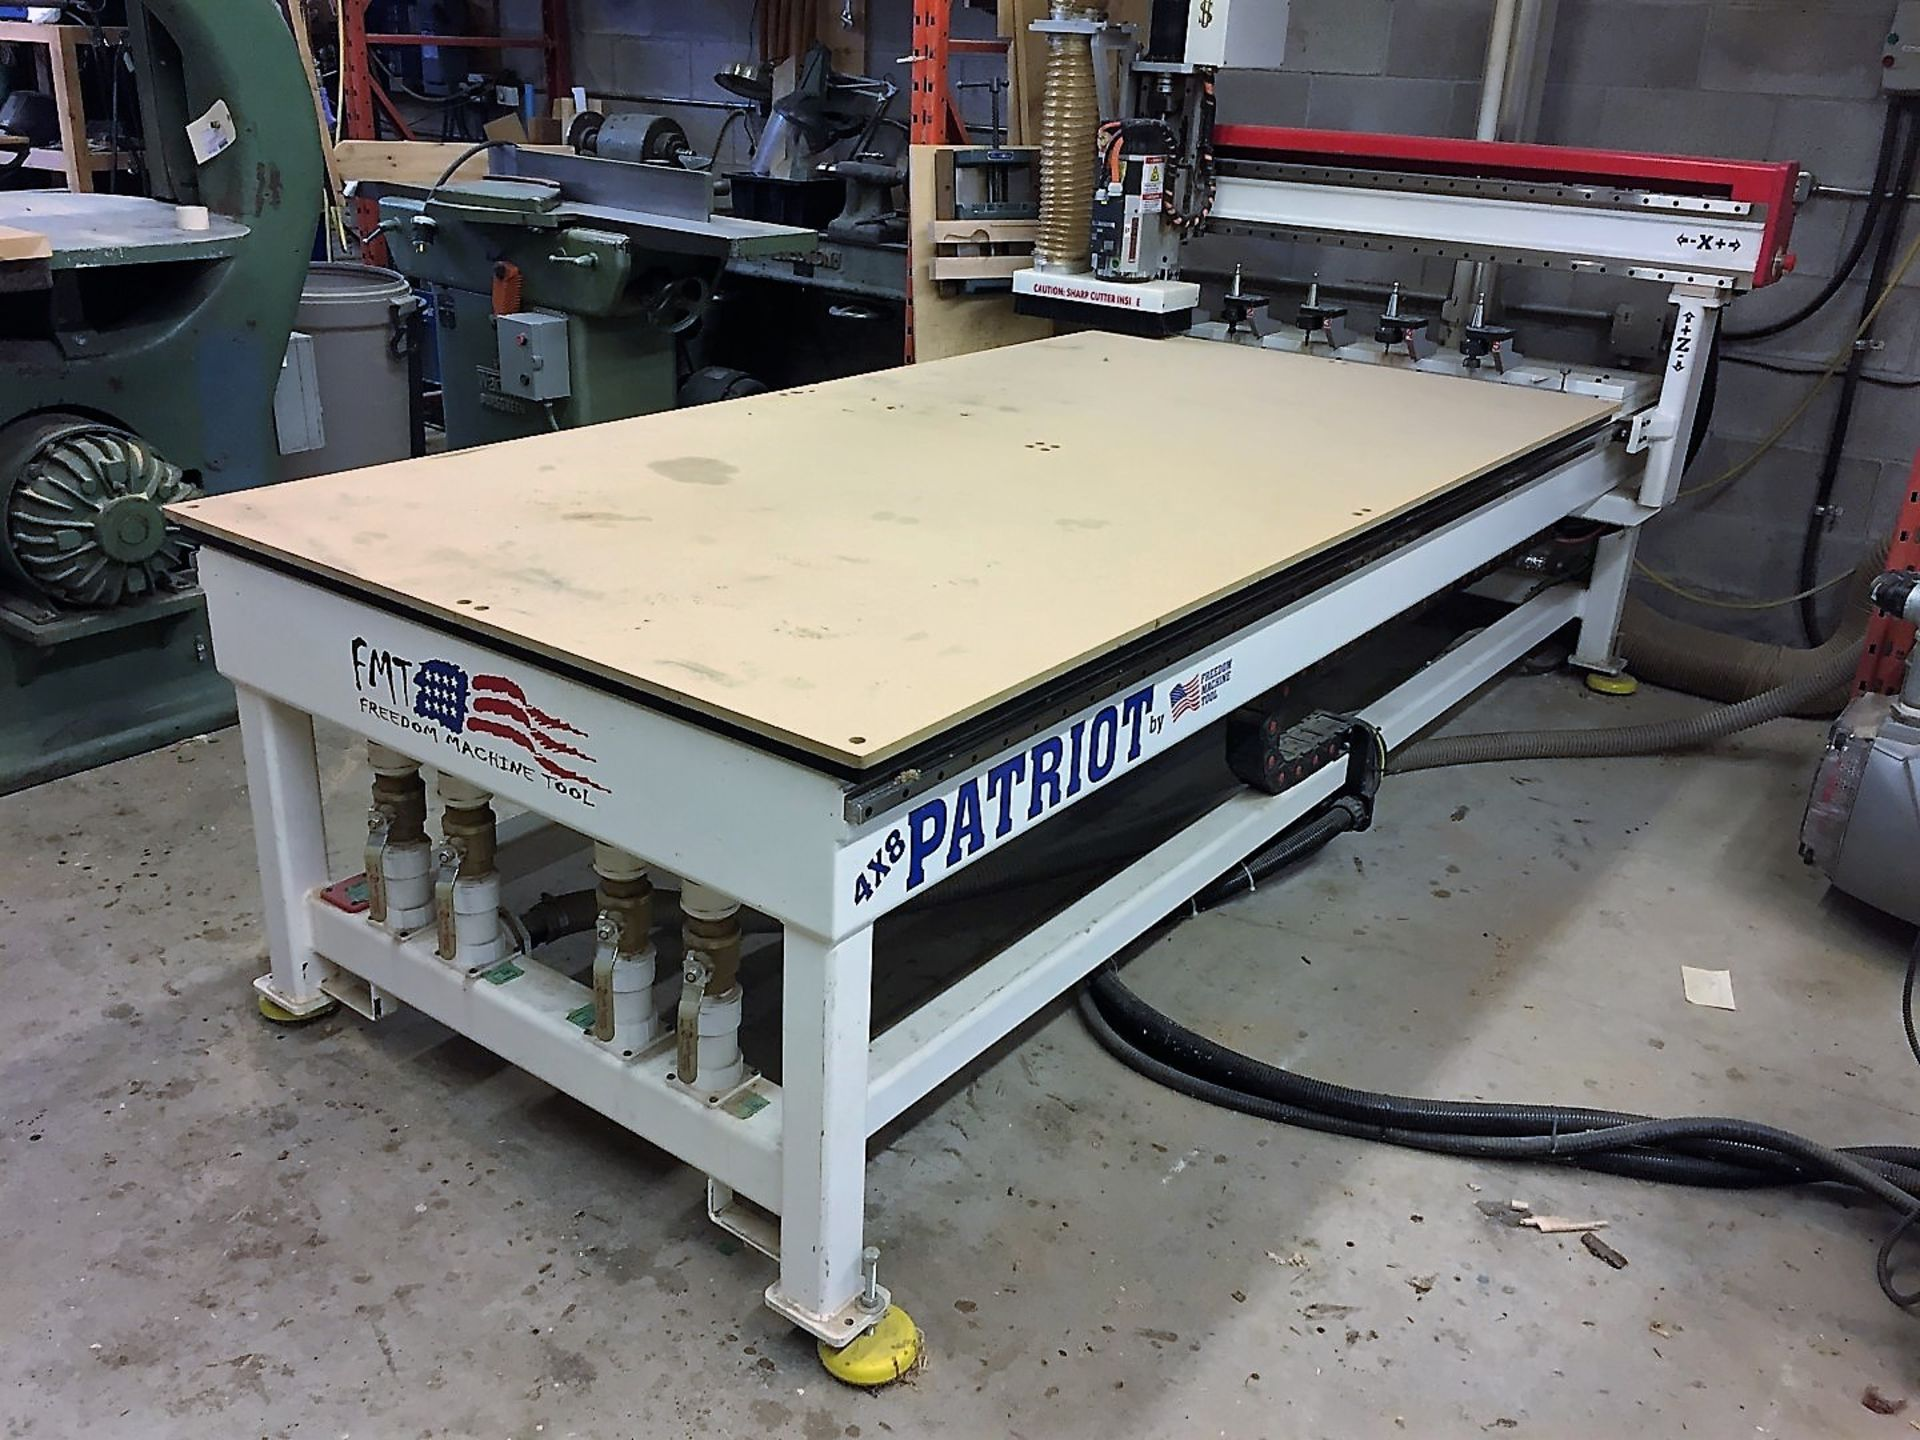 Lot 15 - 4'x8' Freedom Machine Model FMT-F35-4-8-7 CNC Router, S/N 40G&, New 2012